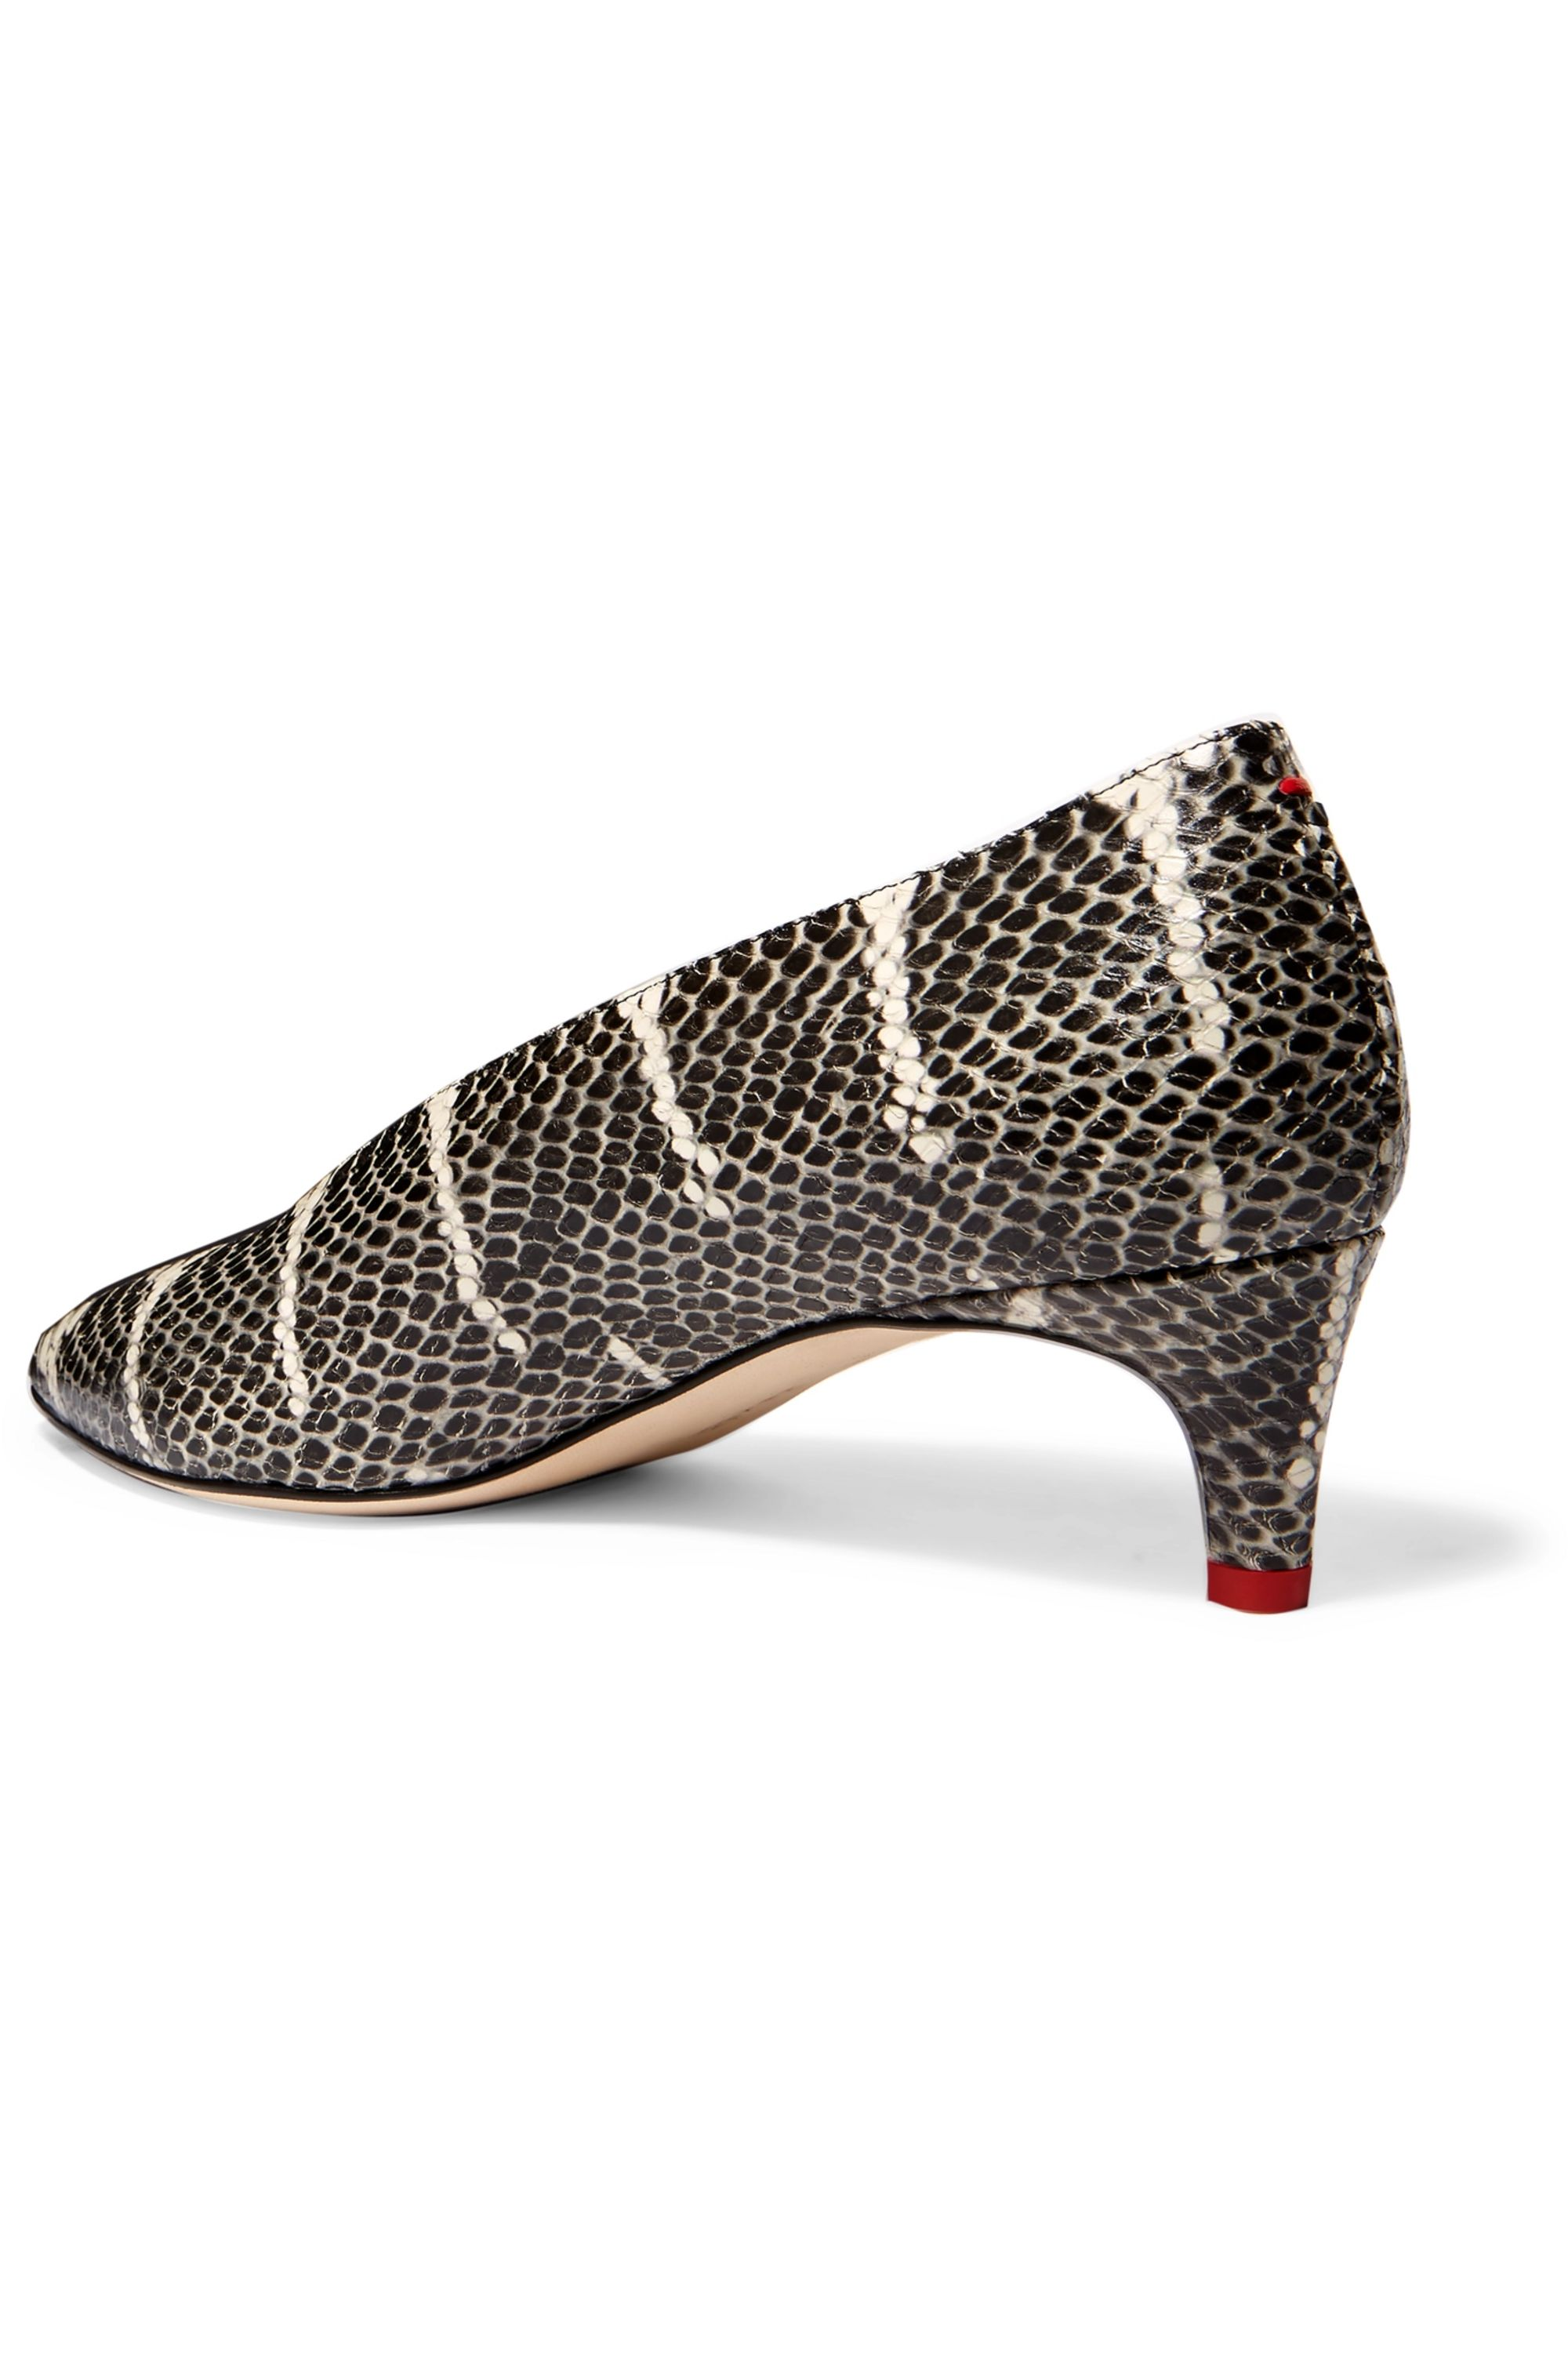 aeyde Camilla snake-effect leather pumps